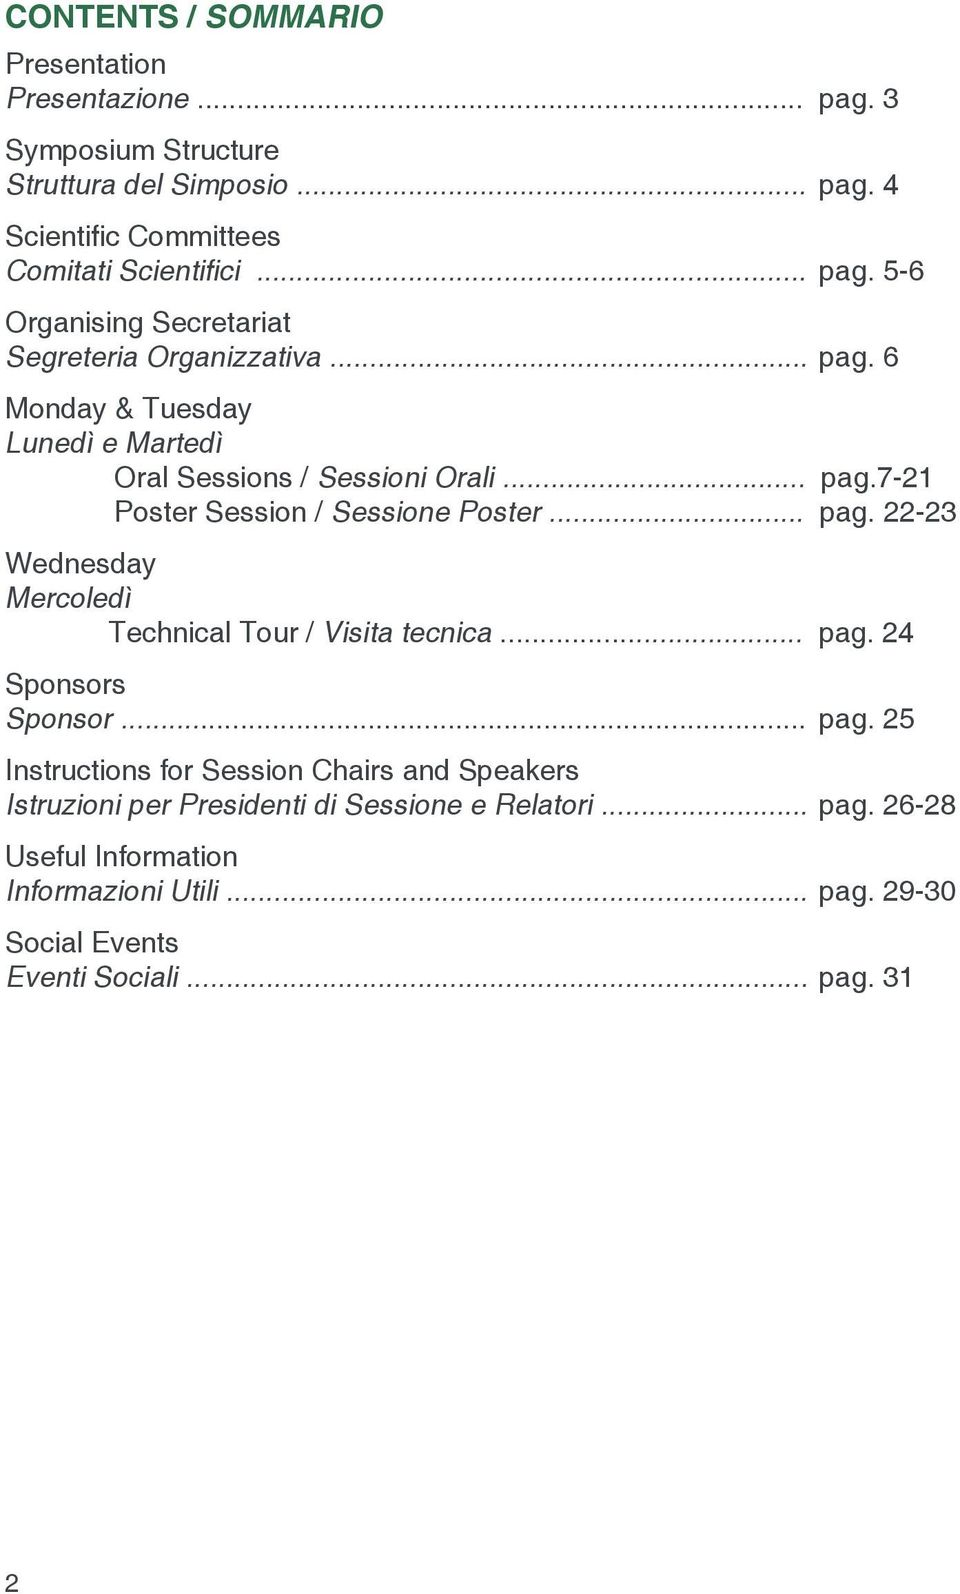 .. pag. 24 Sponsors Sponsor... pag. 25 Instructions for Session Chairs and Speakers Istruzioni per Presidenti di Sessione e Relatori... pag. 26-28 Useful Information Informazioni Utili.